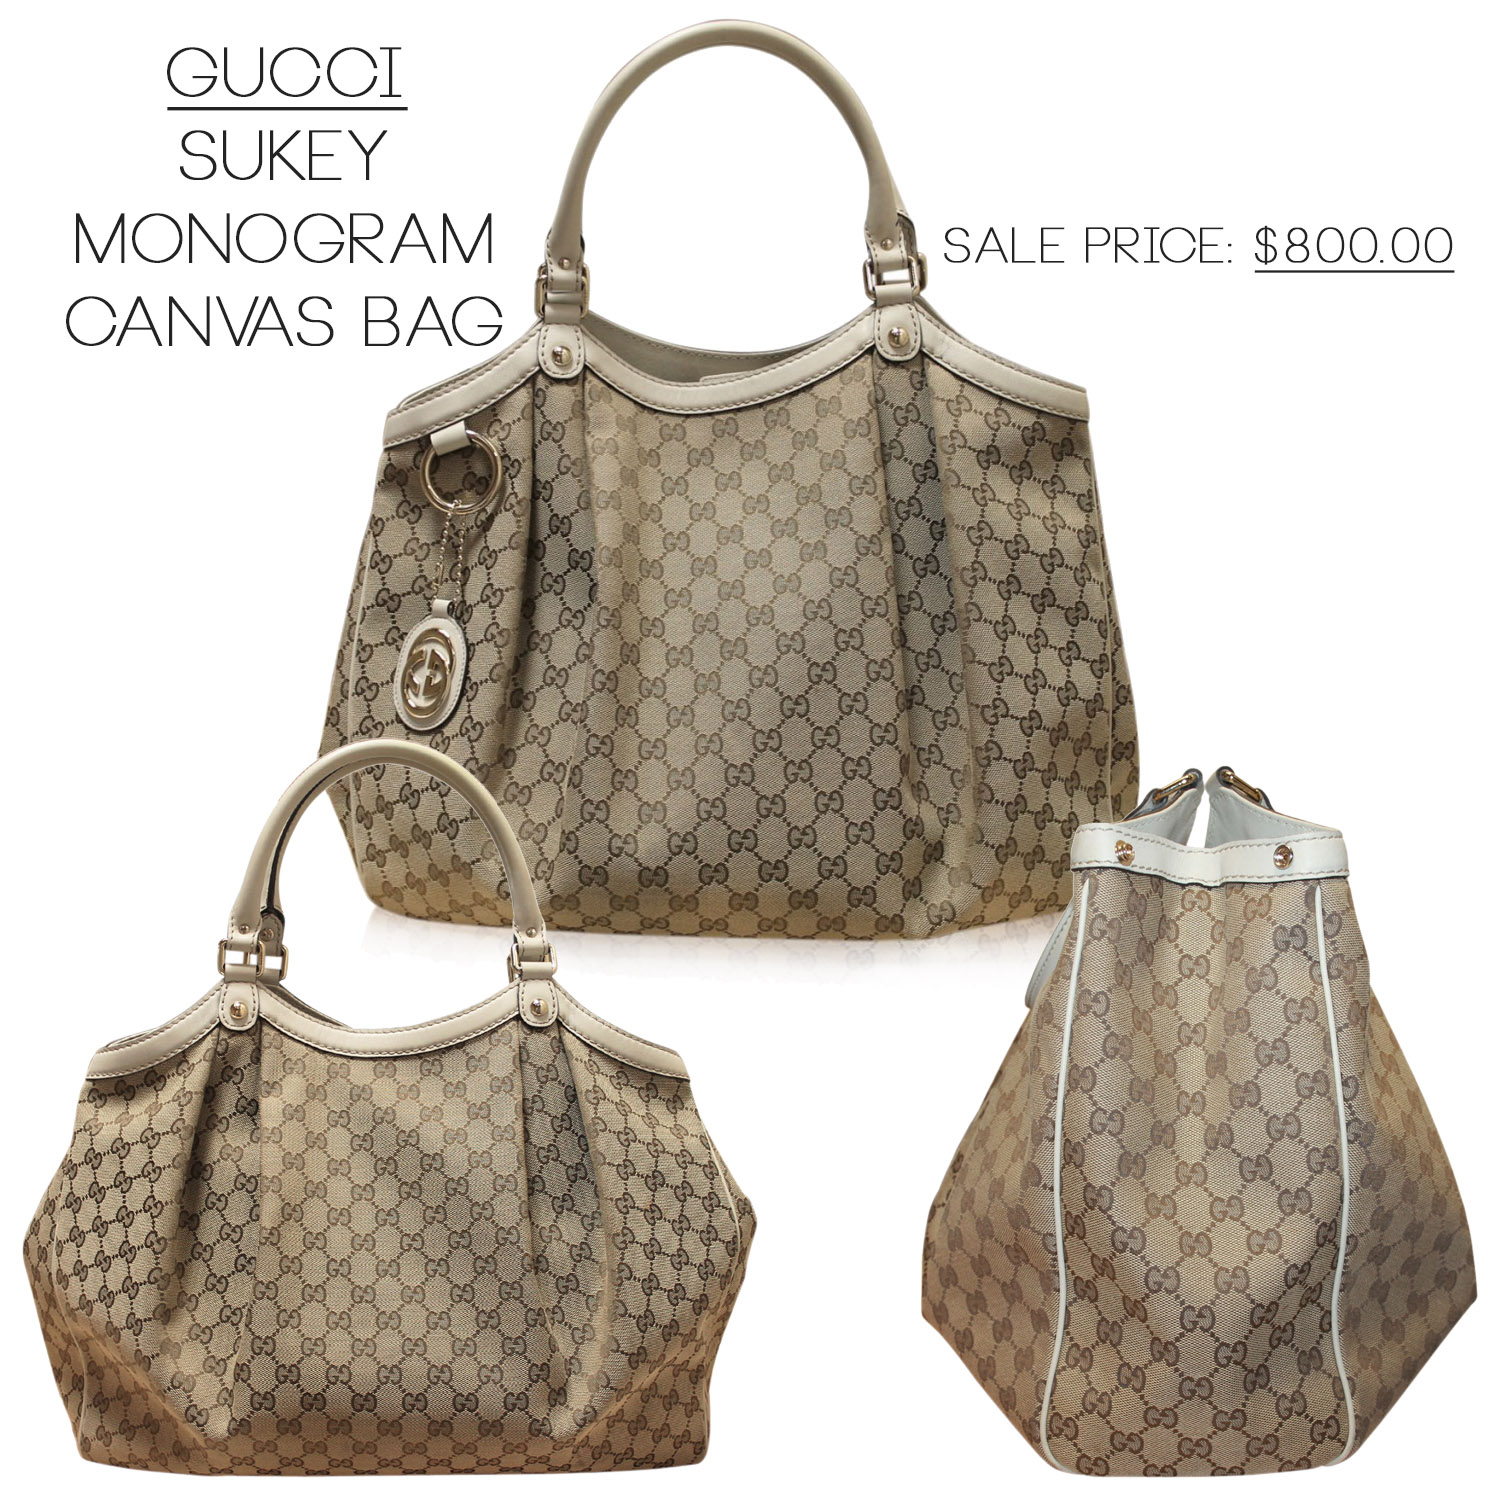 Gucci Sukey Shoulder Bag Canvas